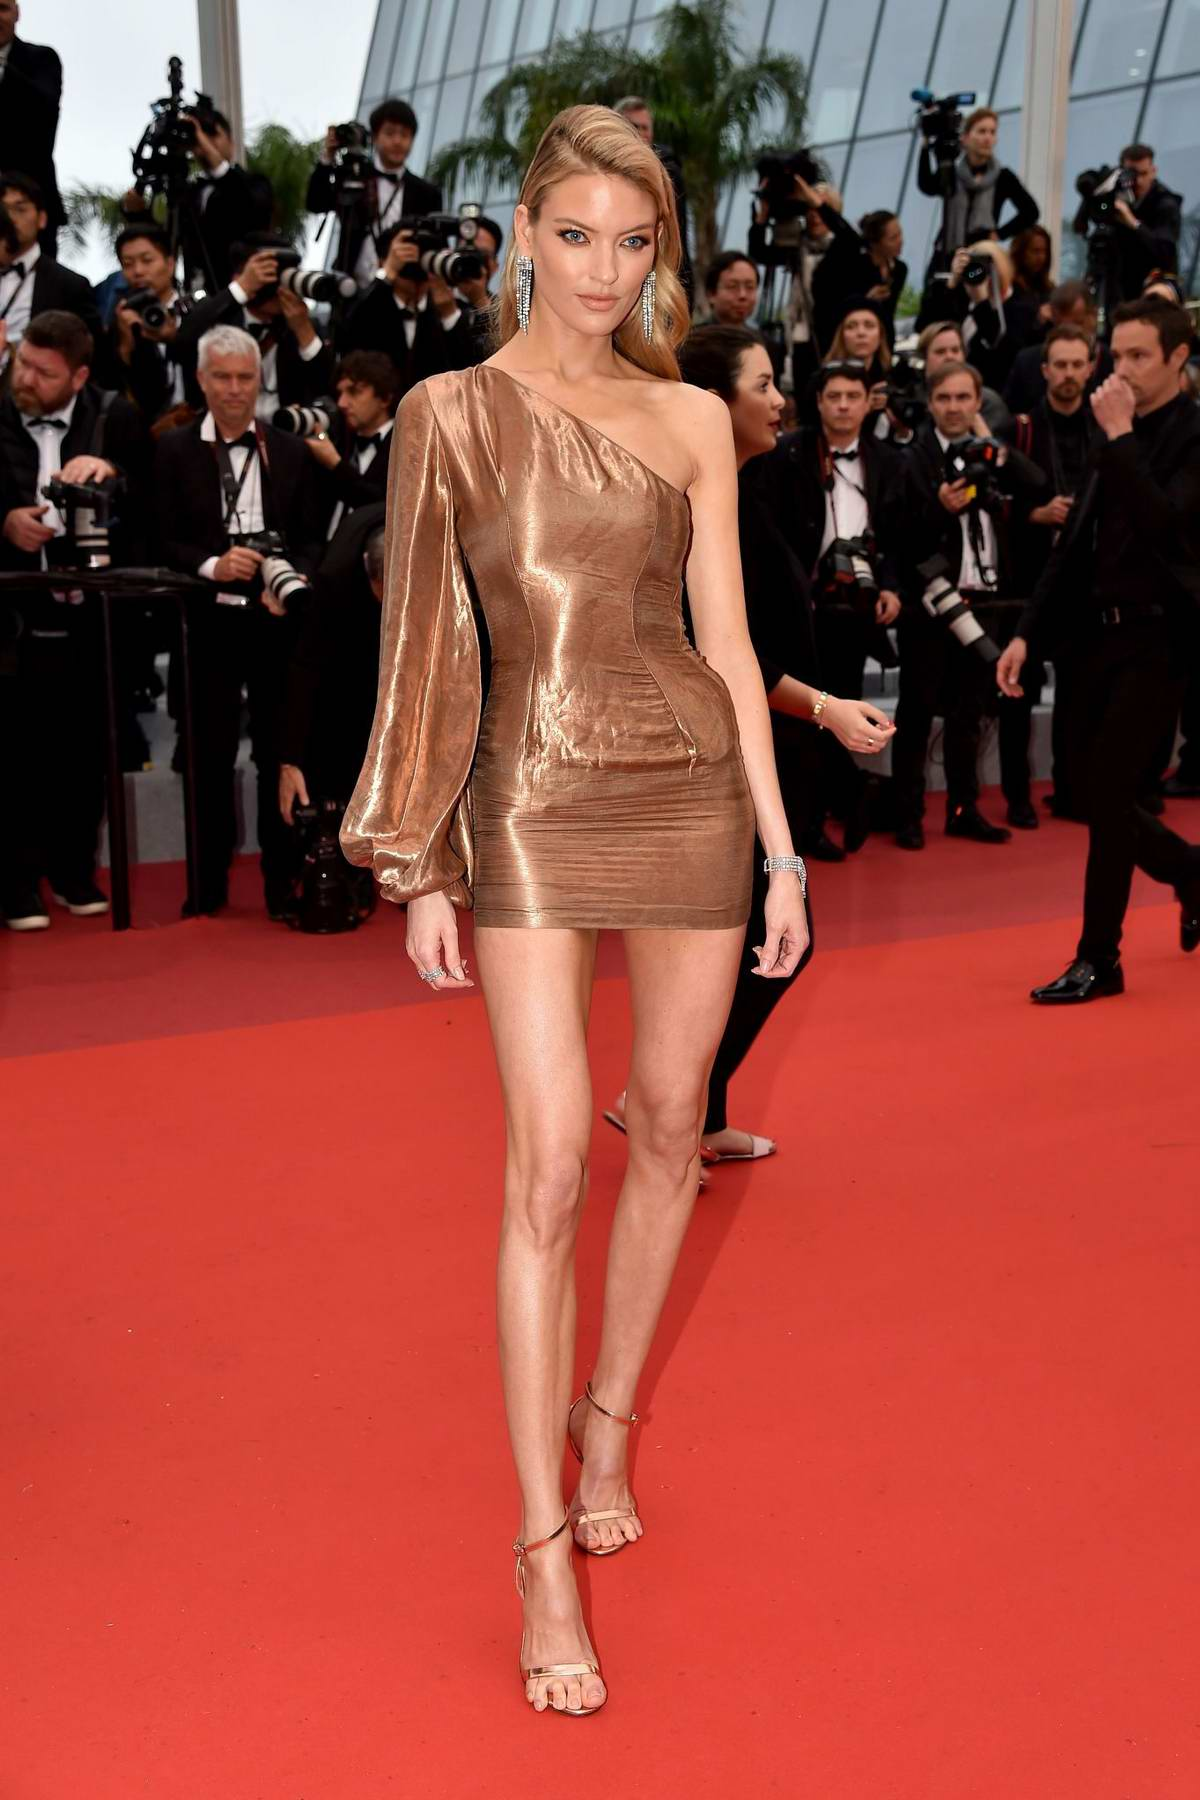 Martha Hunt attends the screening of 'Les Plus Belles Annees D'Une Vie' during the 72nd annual Cannes Film Festival in Cannes, France